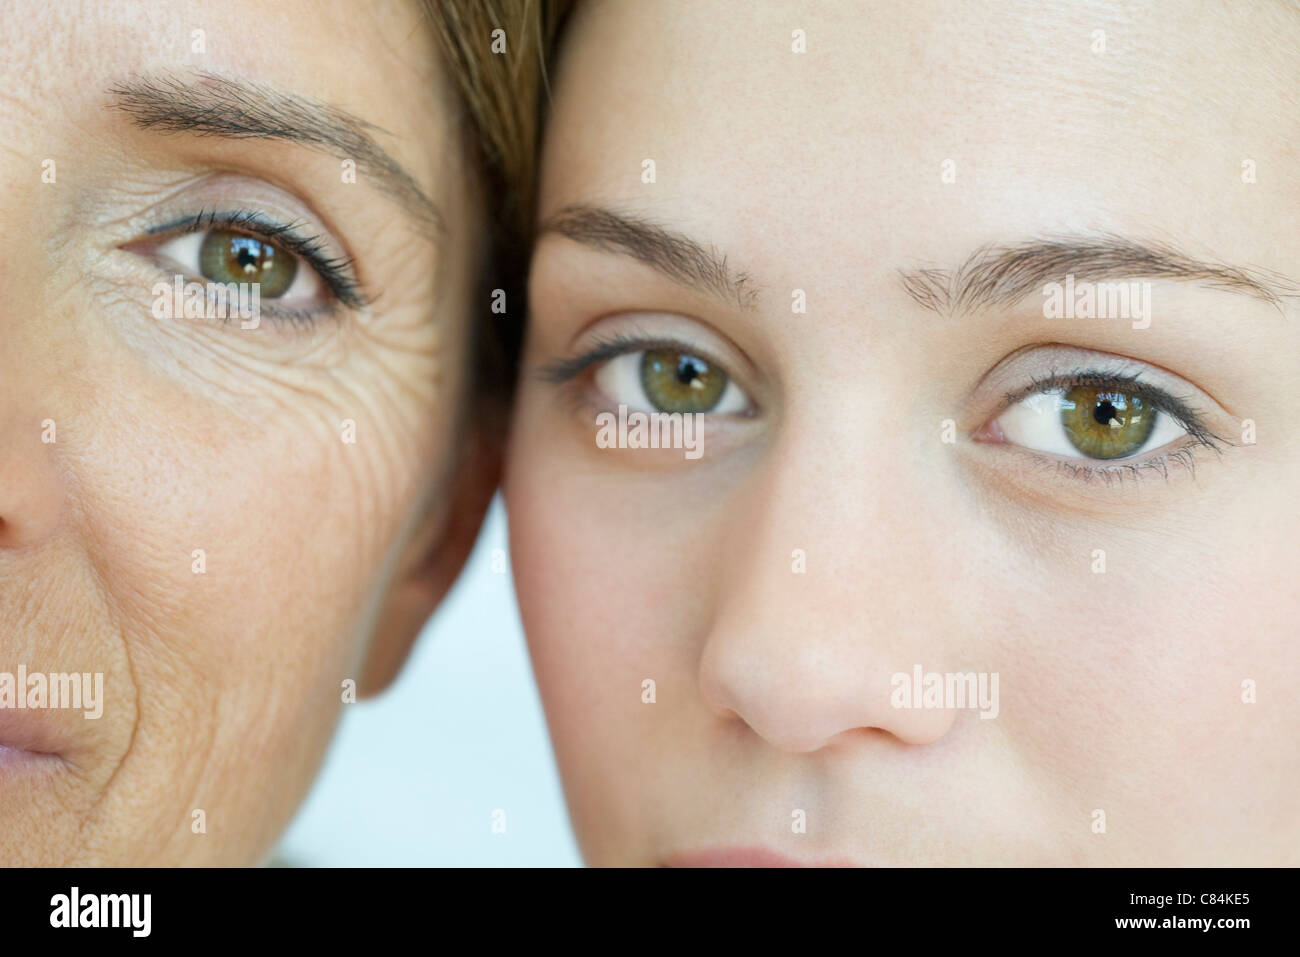 Mother and daughter, close-up portrait - Stock Image